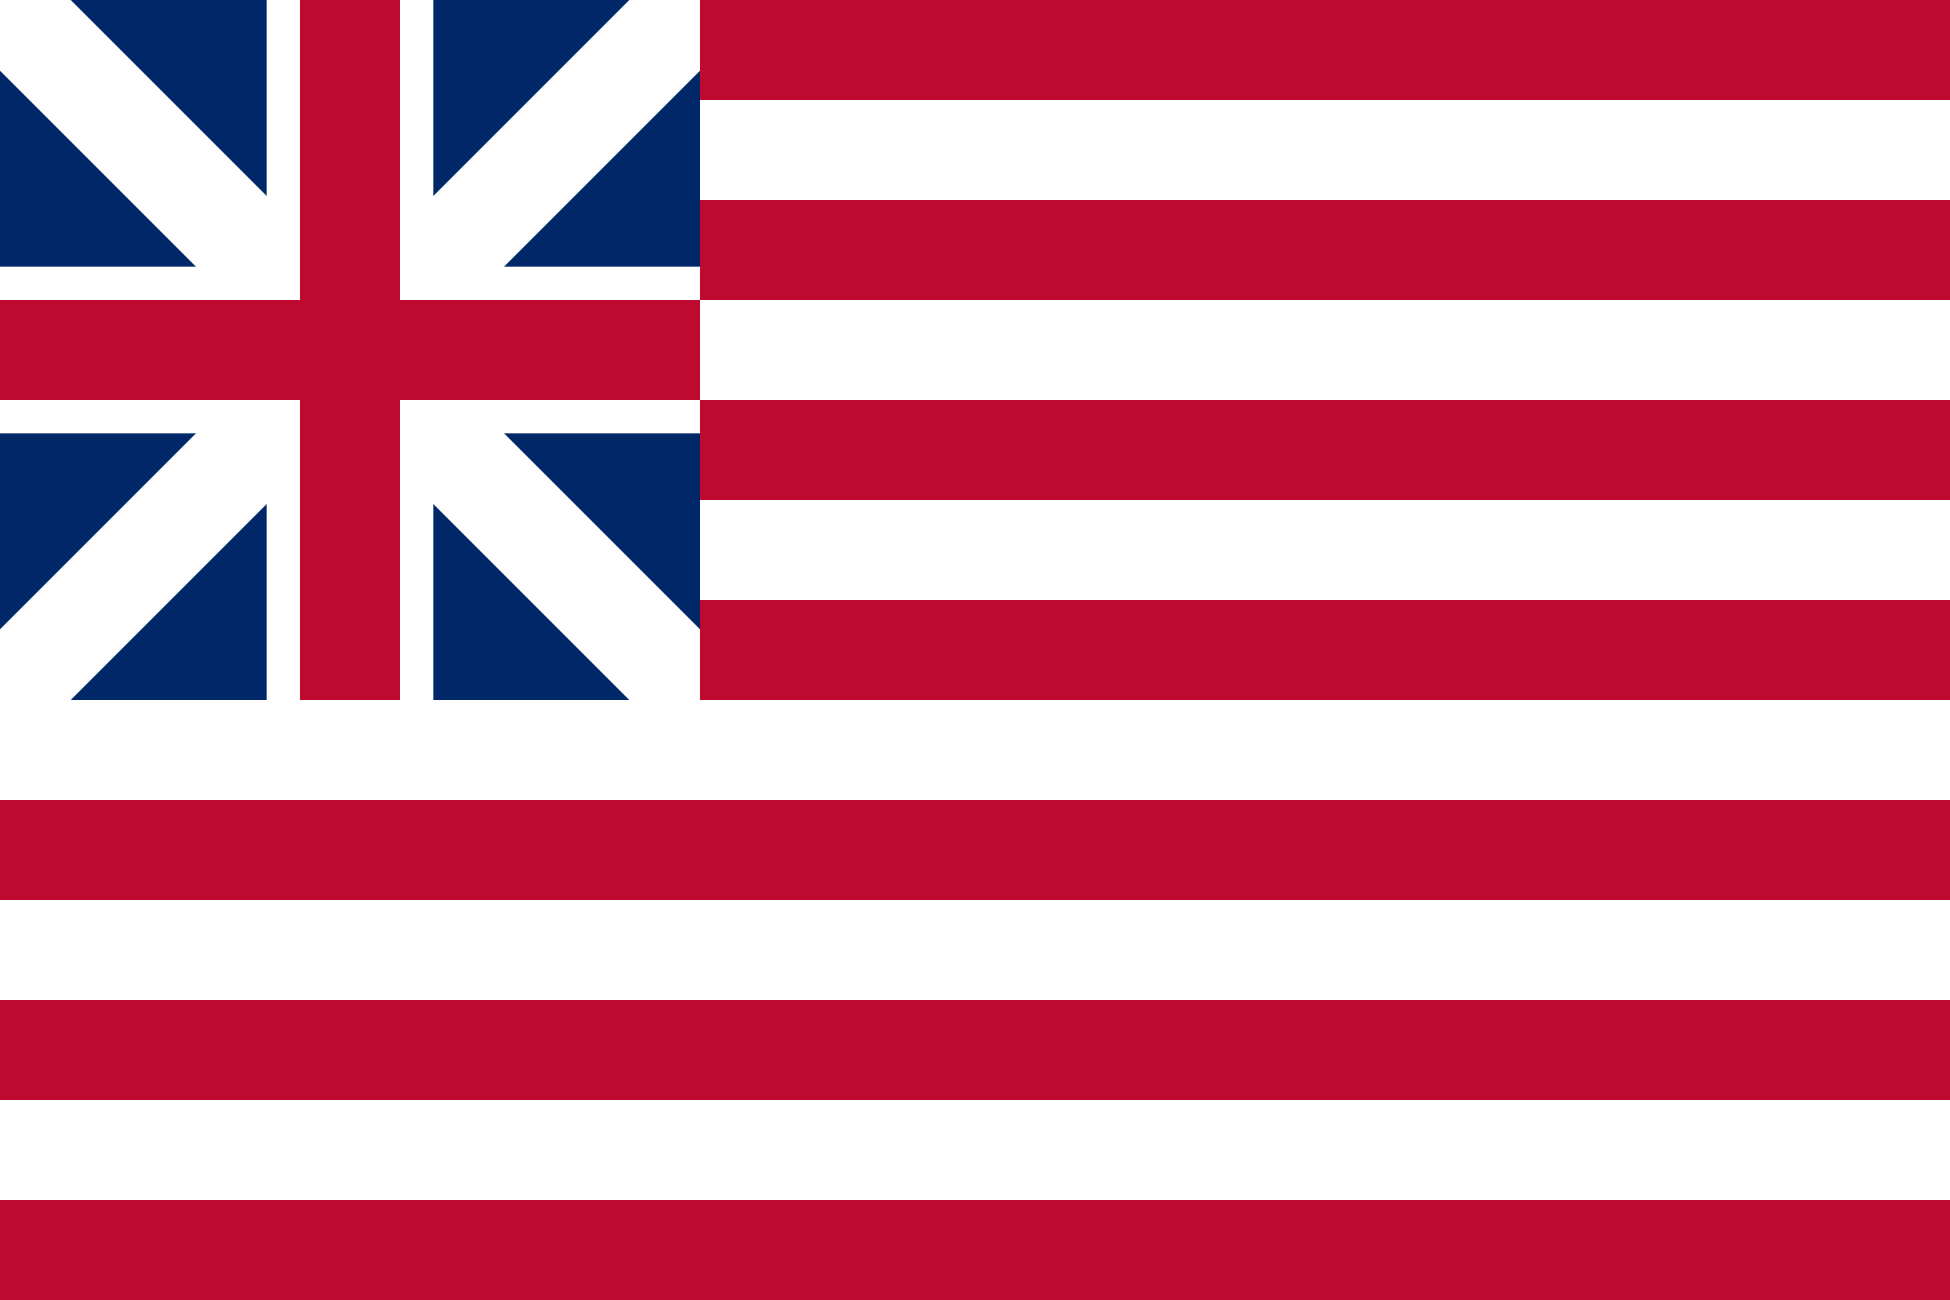 Flag of the United States, 1776-1777